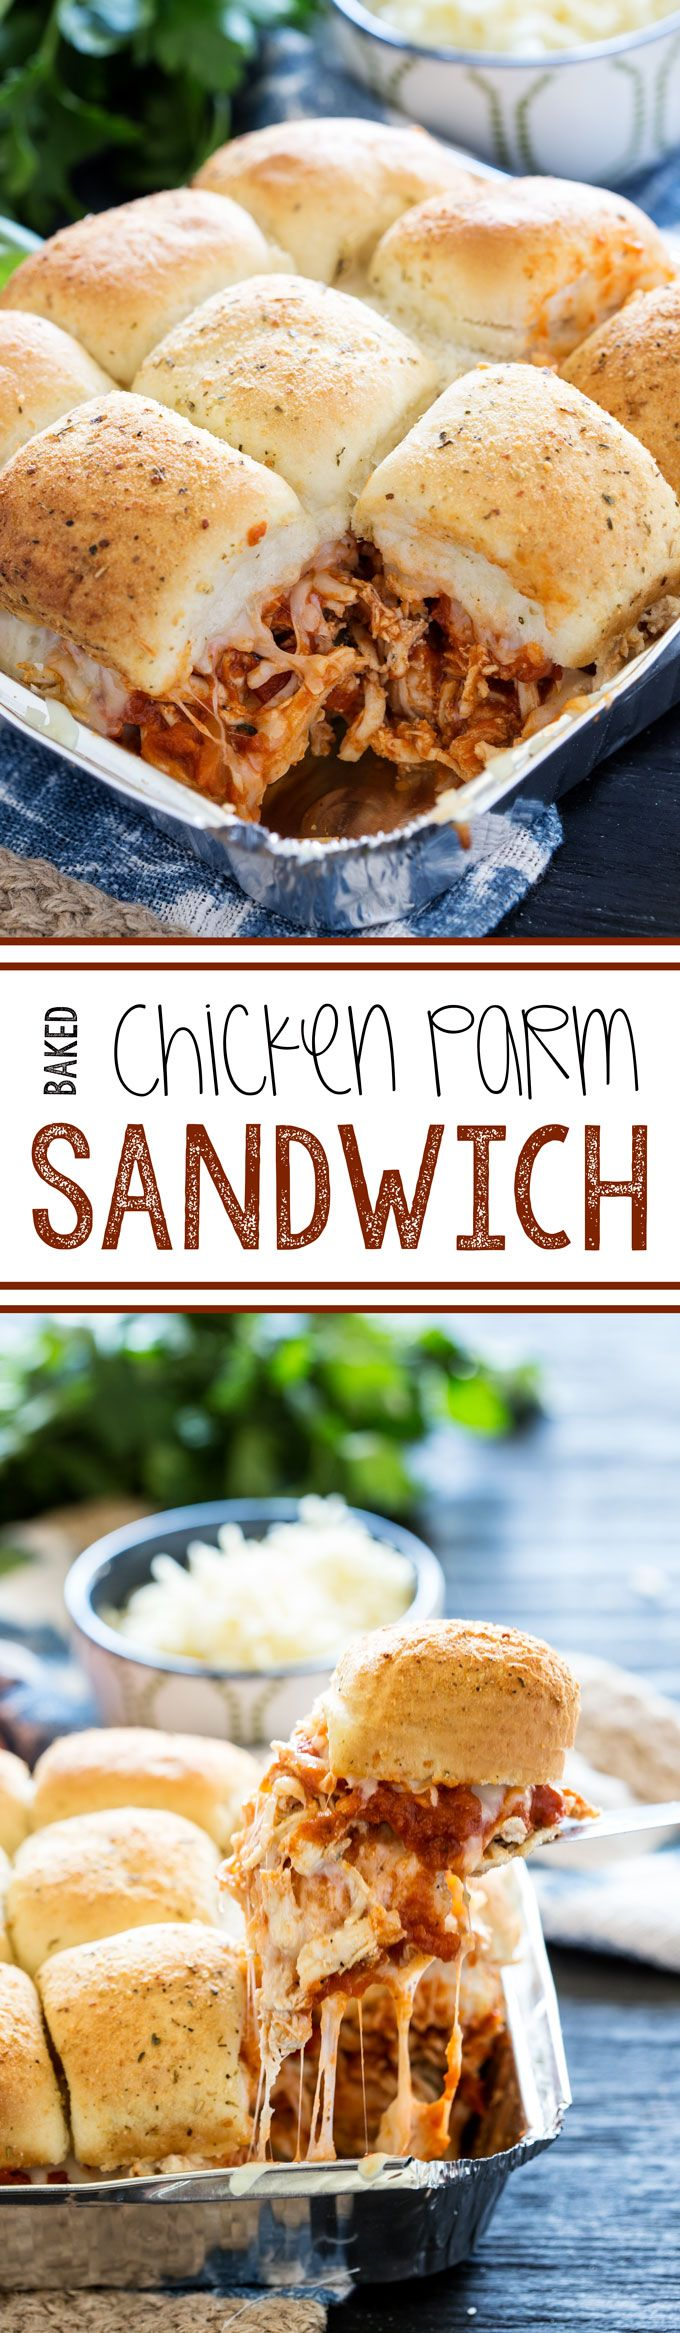 Baked Chicken Parm Sandwiches: The quickest dinner, and a family favorite, crowd-pleasing meal too! These baked chicken parm sandwiches whip up quick and are bursting with flavor! #ad - Eazy Peazy Mealz